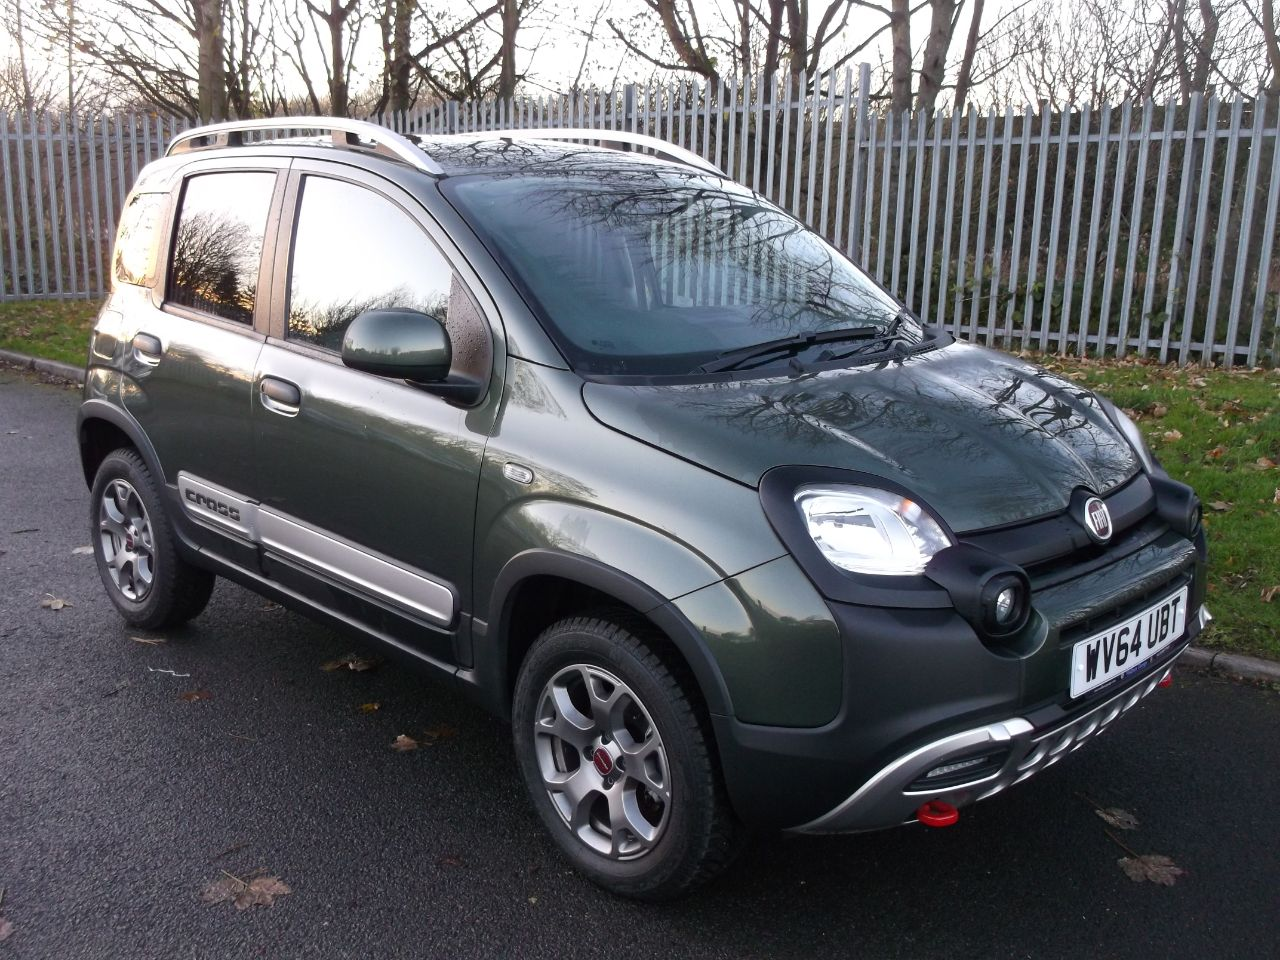 used fiat panda 1 3 multijet 80 cross 4x4 5dr for sale in consett durham bescol motors. Black Bedroom Furniture Sets. Home Design Ideas